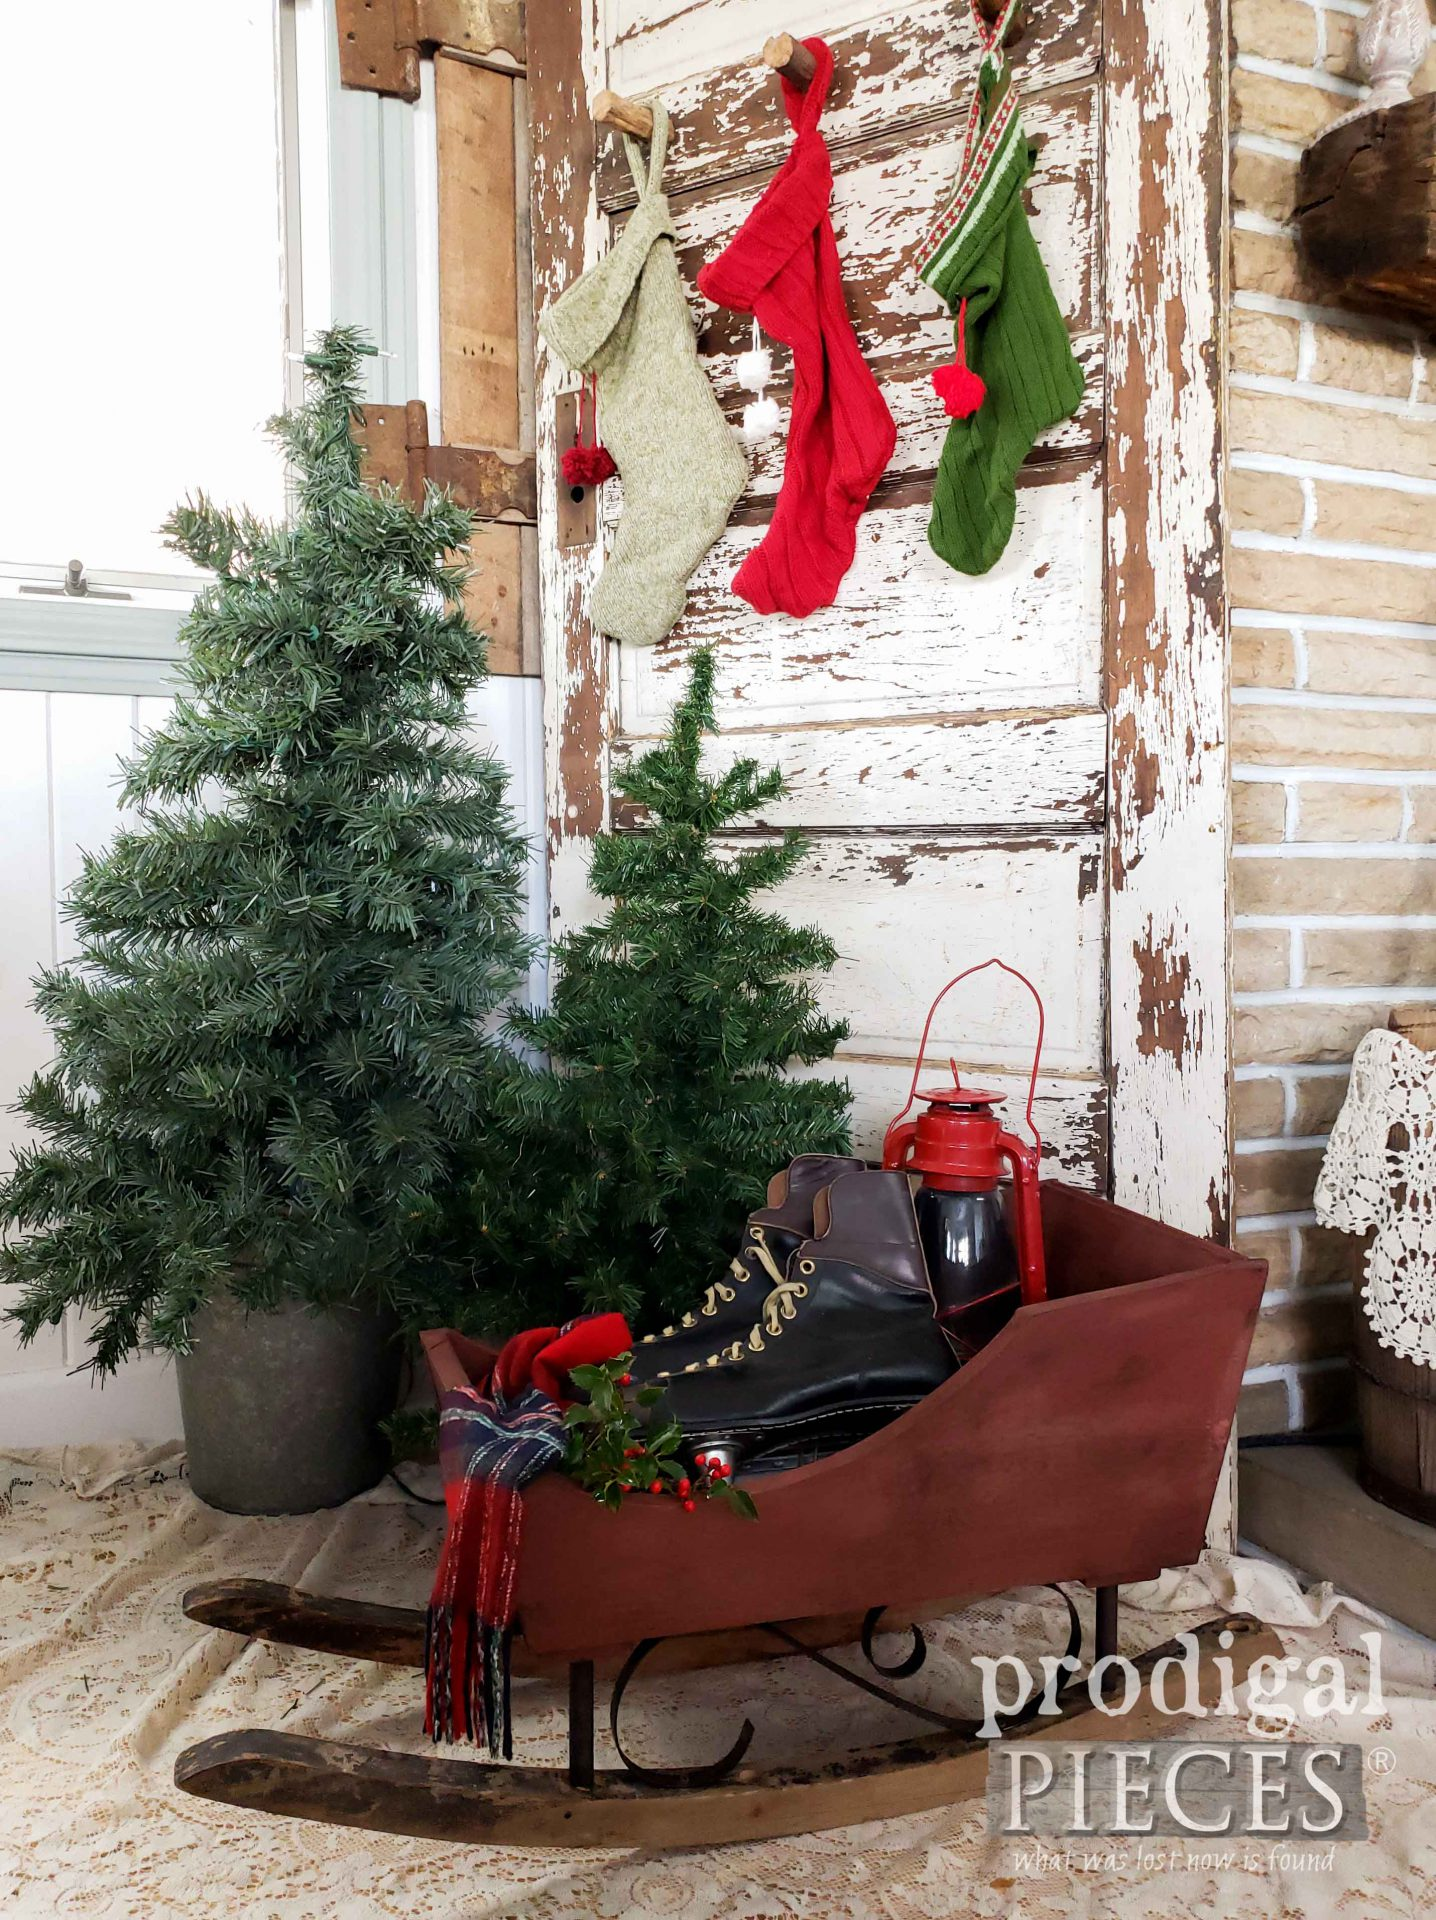 Rustic Farmhouse Christmas Sleigh built by Larissa of Prodigal Pieces out of Salvaged Parts | Details at prodigalpieces.com #prodigalpieces #diy #woodworking #tools #farmhouse #christmas #home #homedecor #handmade